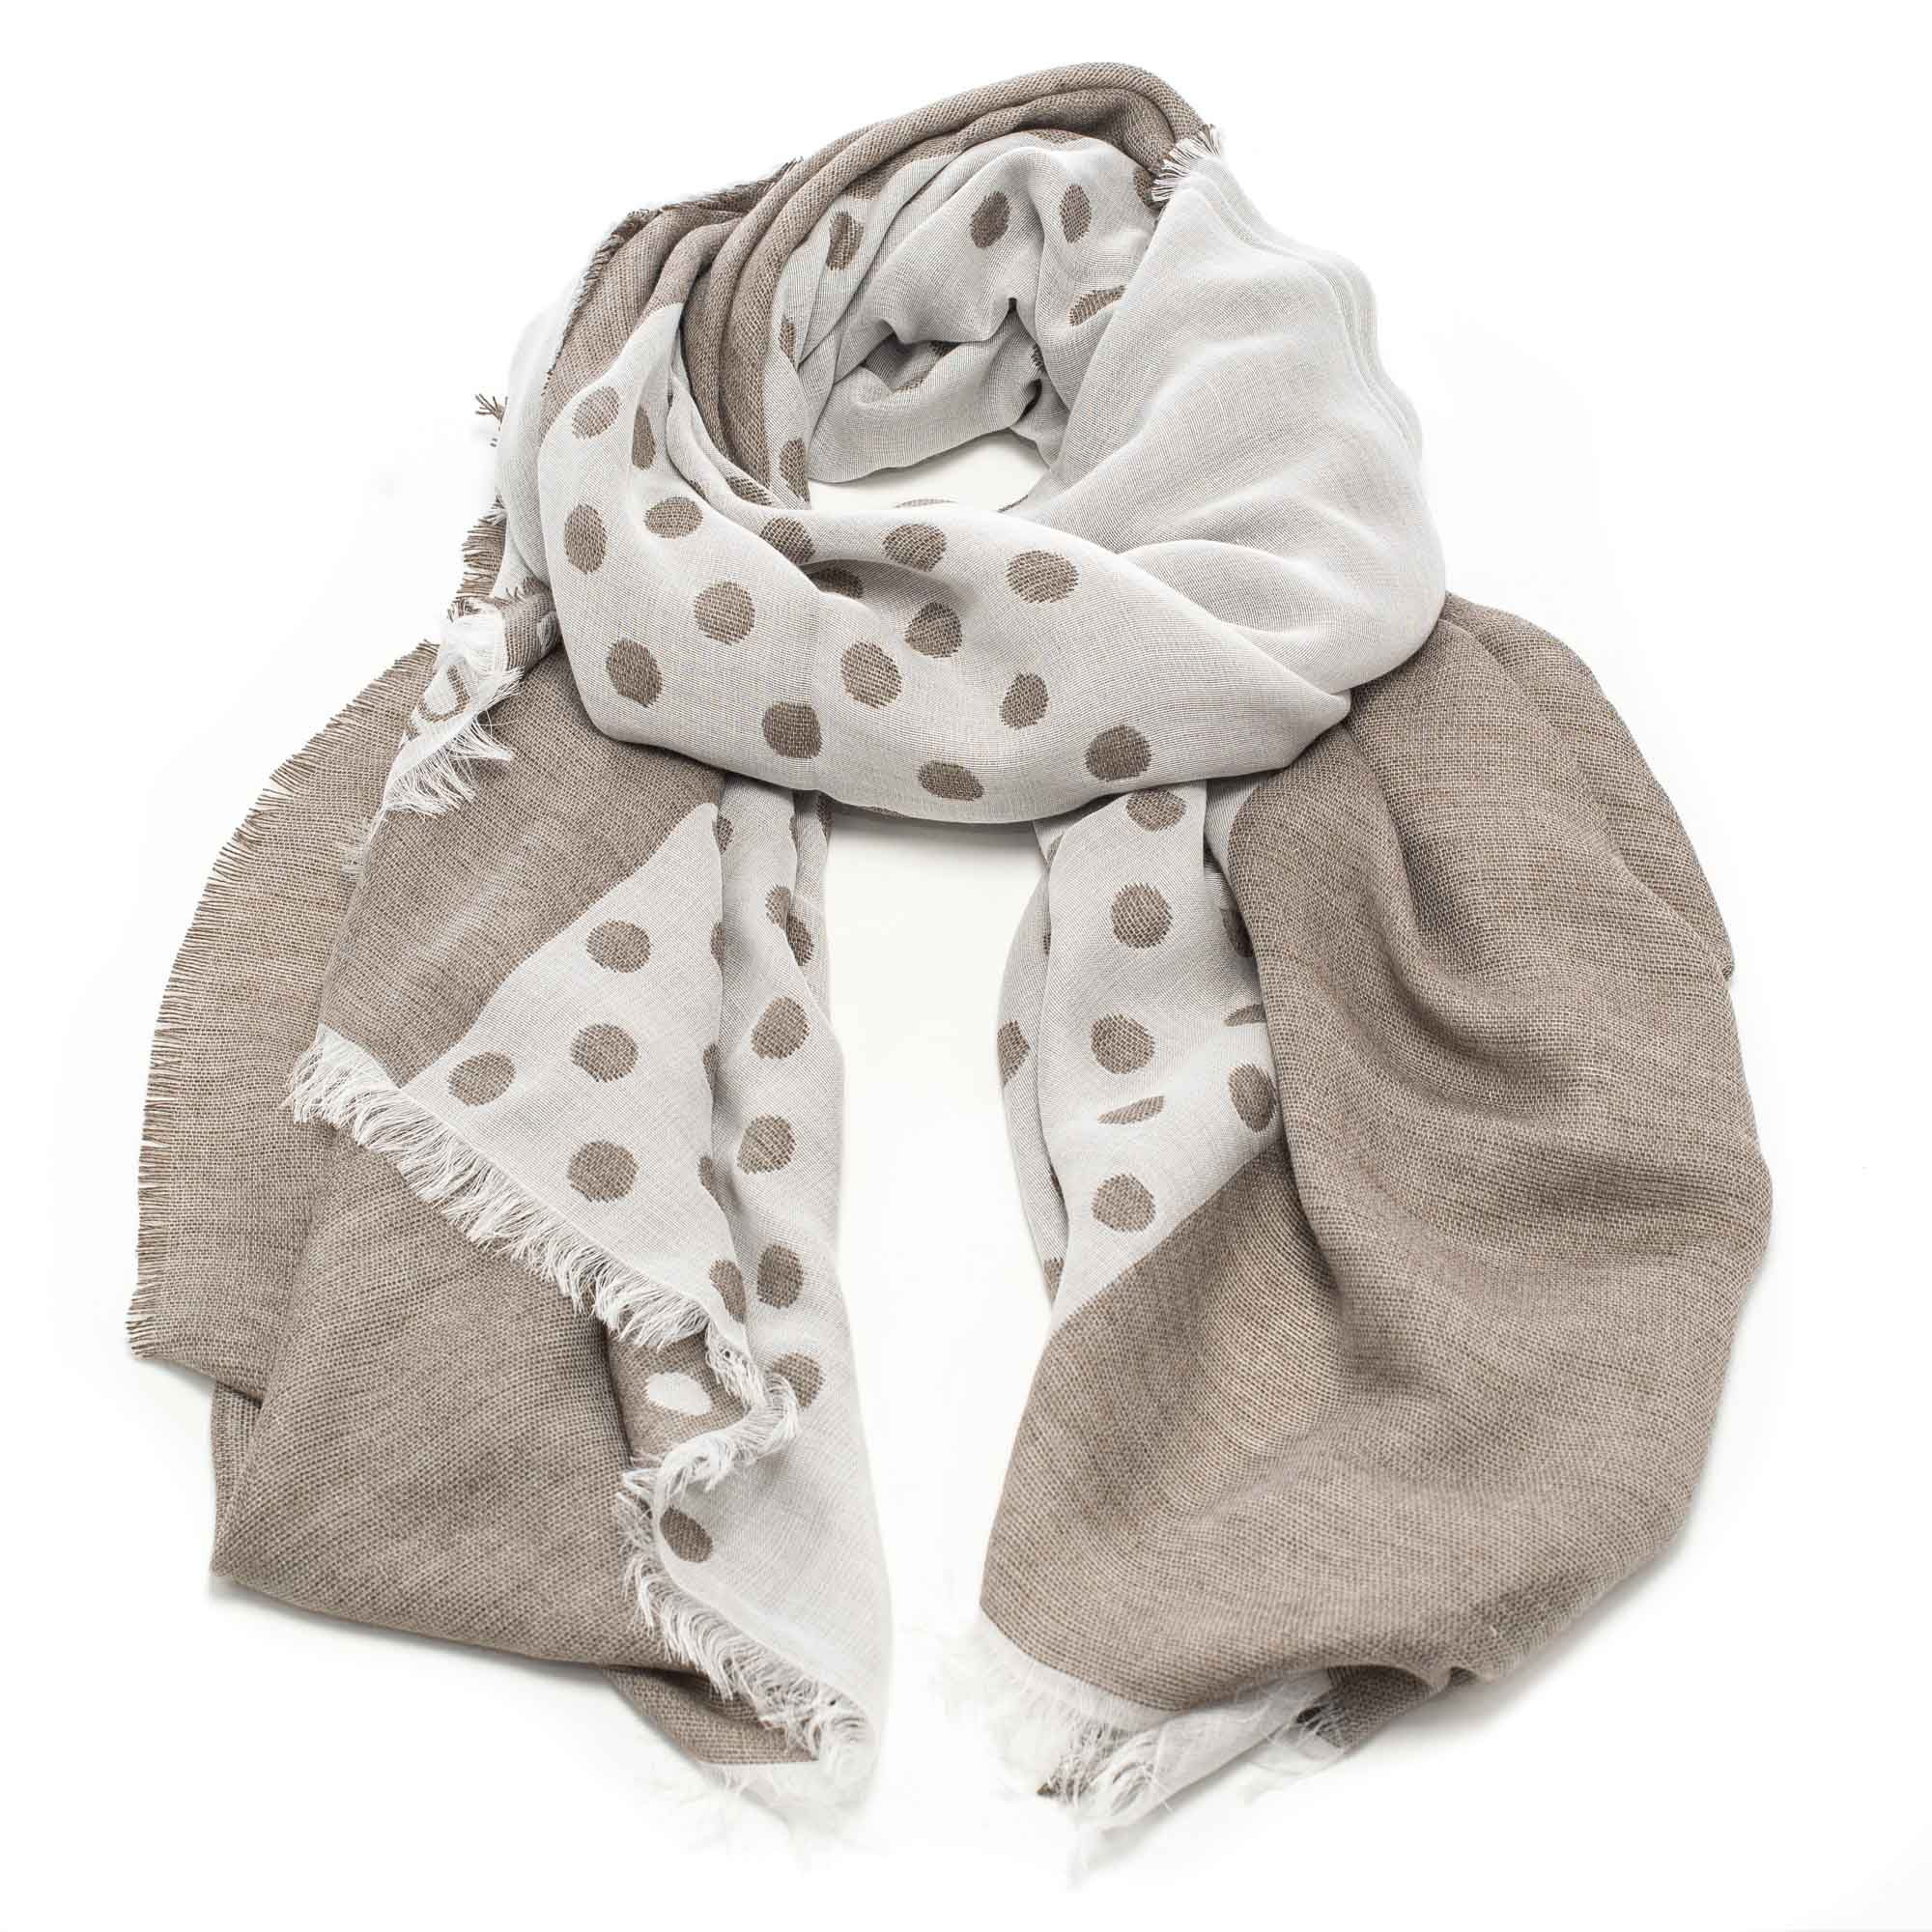 buy popular f75cf 9ebc0 Foulard & Sciarpe Donna liu jo in offerta 50%